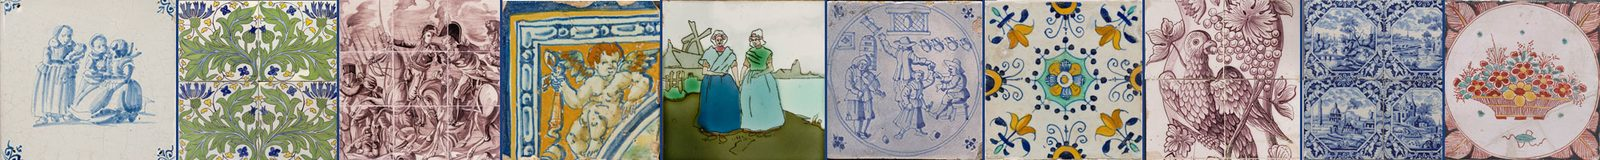 Dutch Tile Museum collection in Otterlo